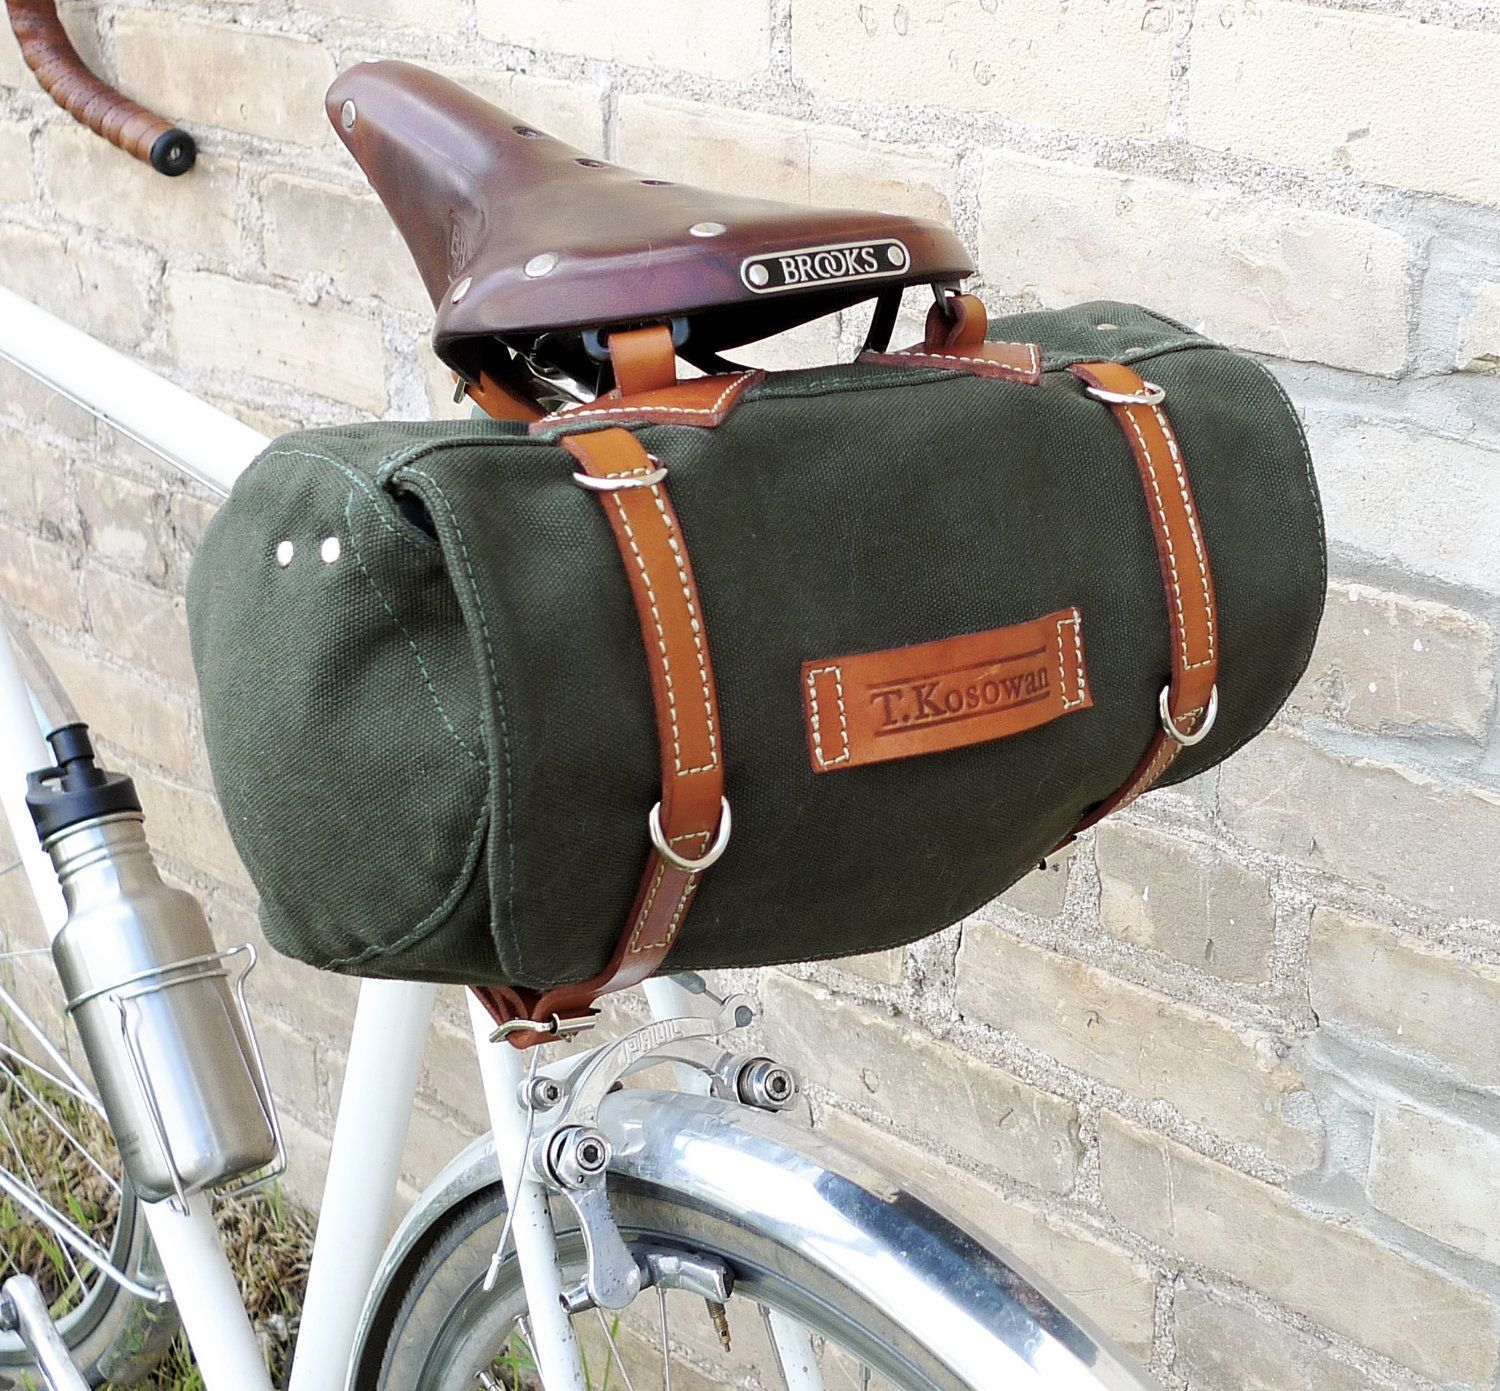 894d89d792 Classic Vintage Style Bicycle Bag (Ready to Ship).  96.00